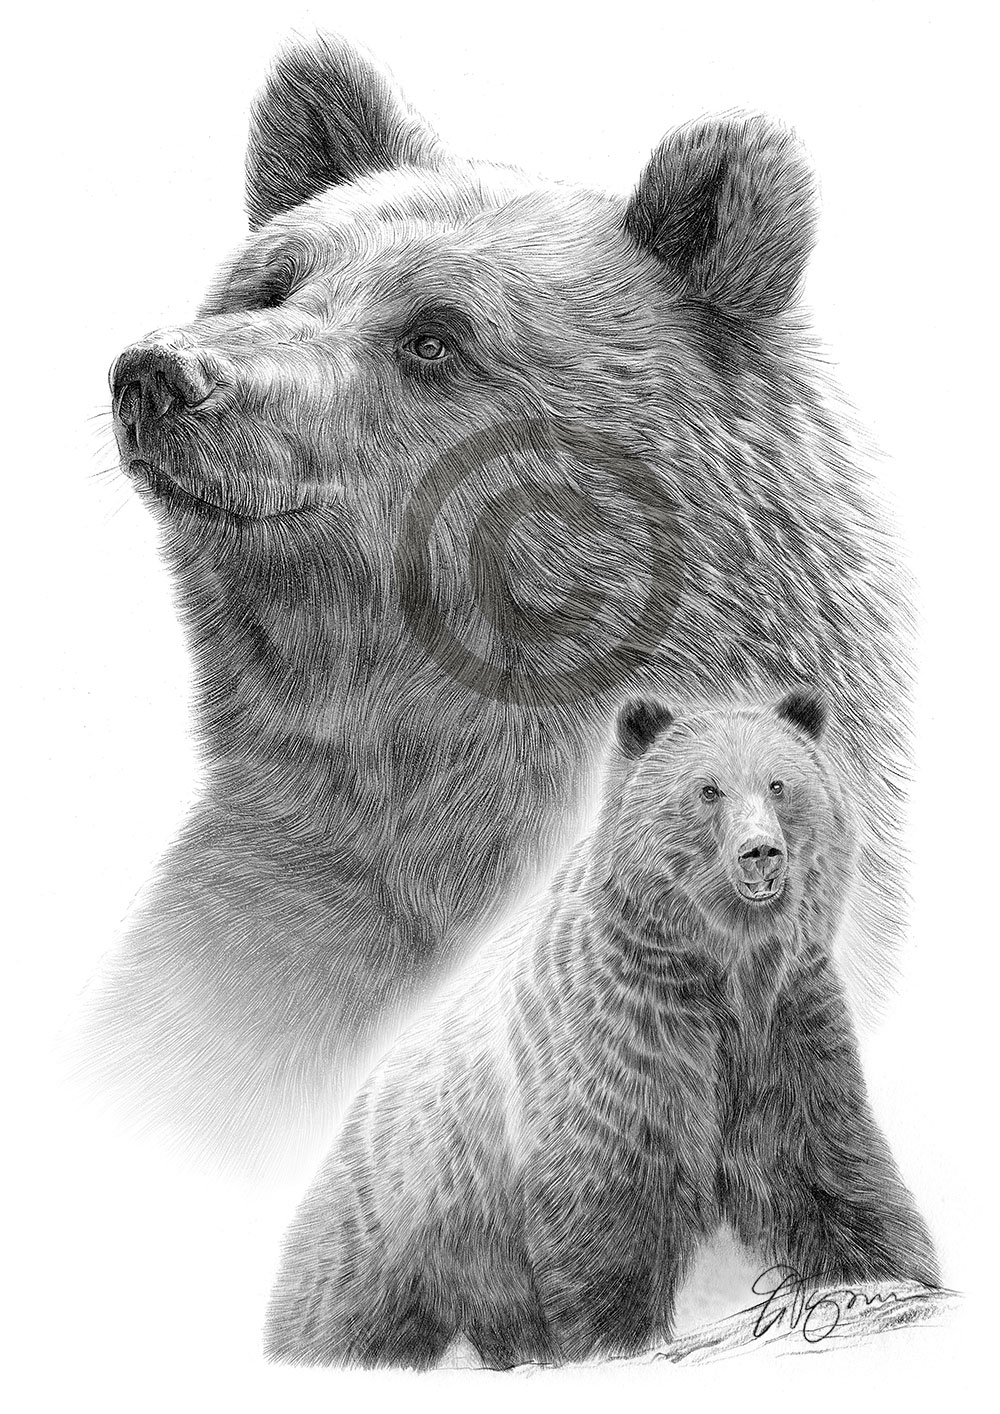 Details about grizzly bear pencil drawing artwork print a3 size by uk artist art